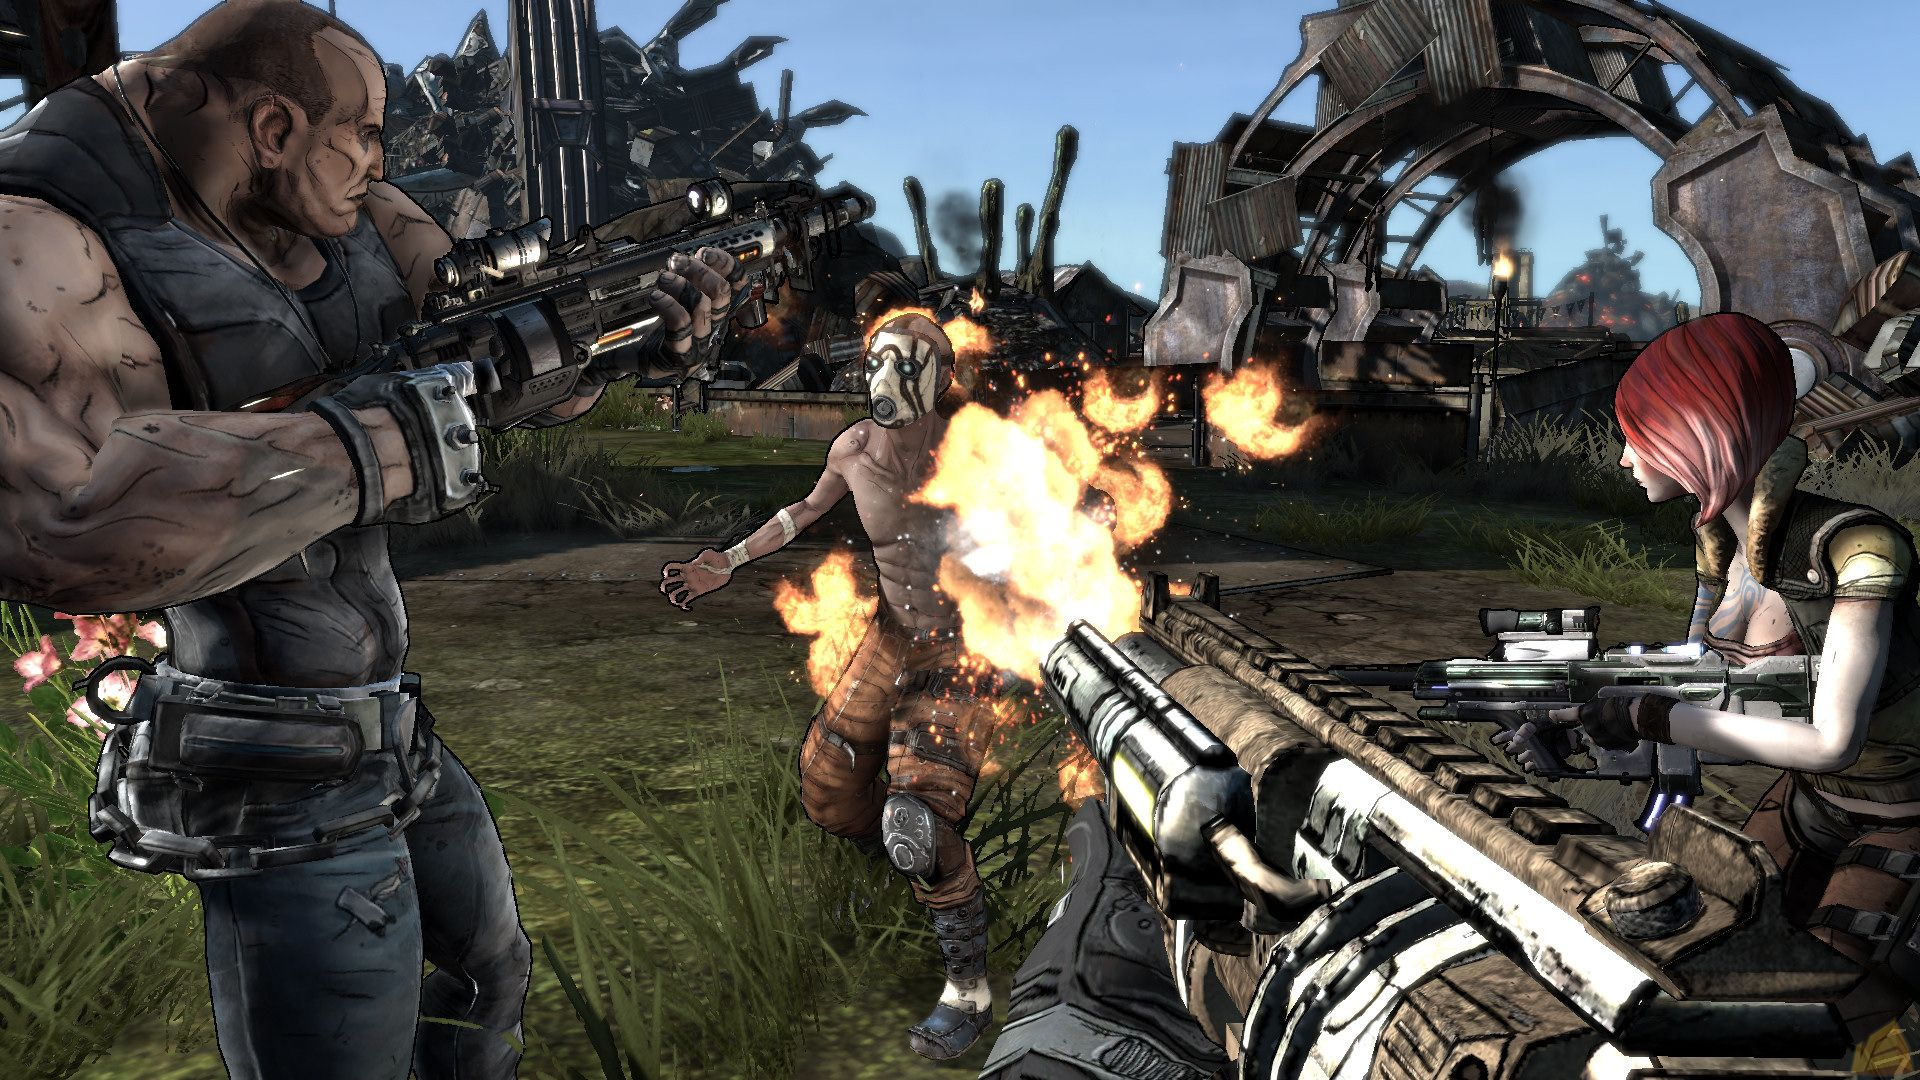 That Time Team Fortress 2 And Borderlands Changed Art Styles Mid-Development